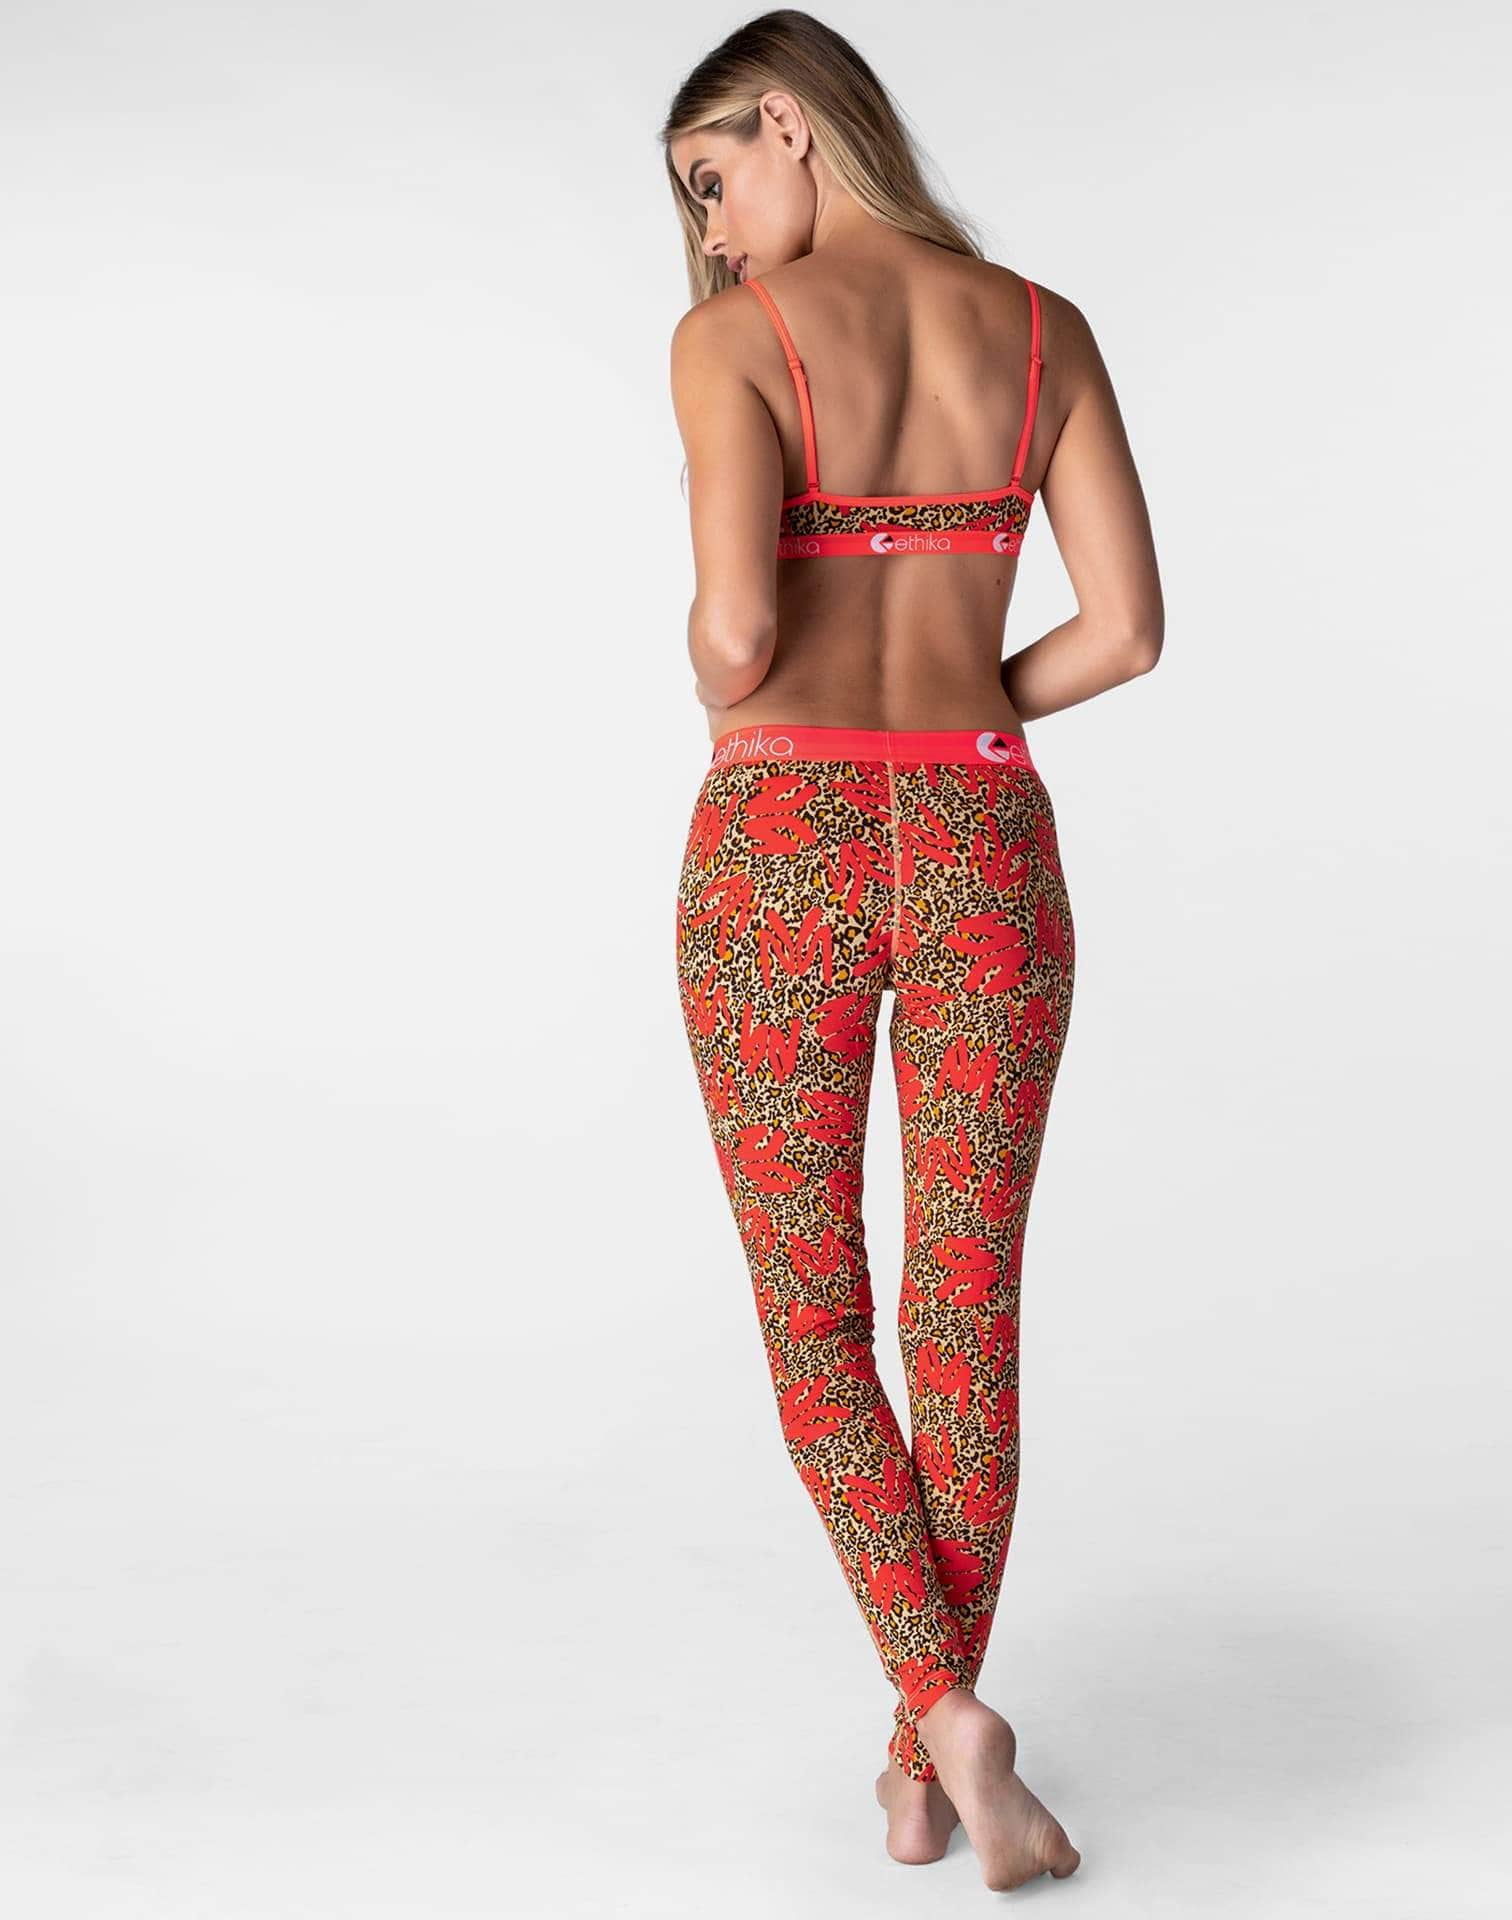 Ethika Women's Leopard Leggings